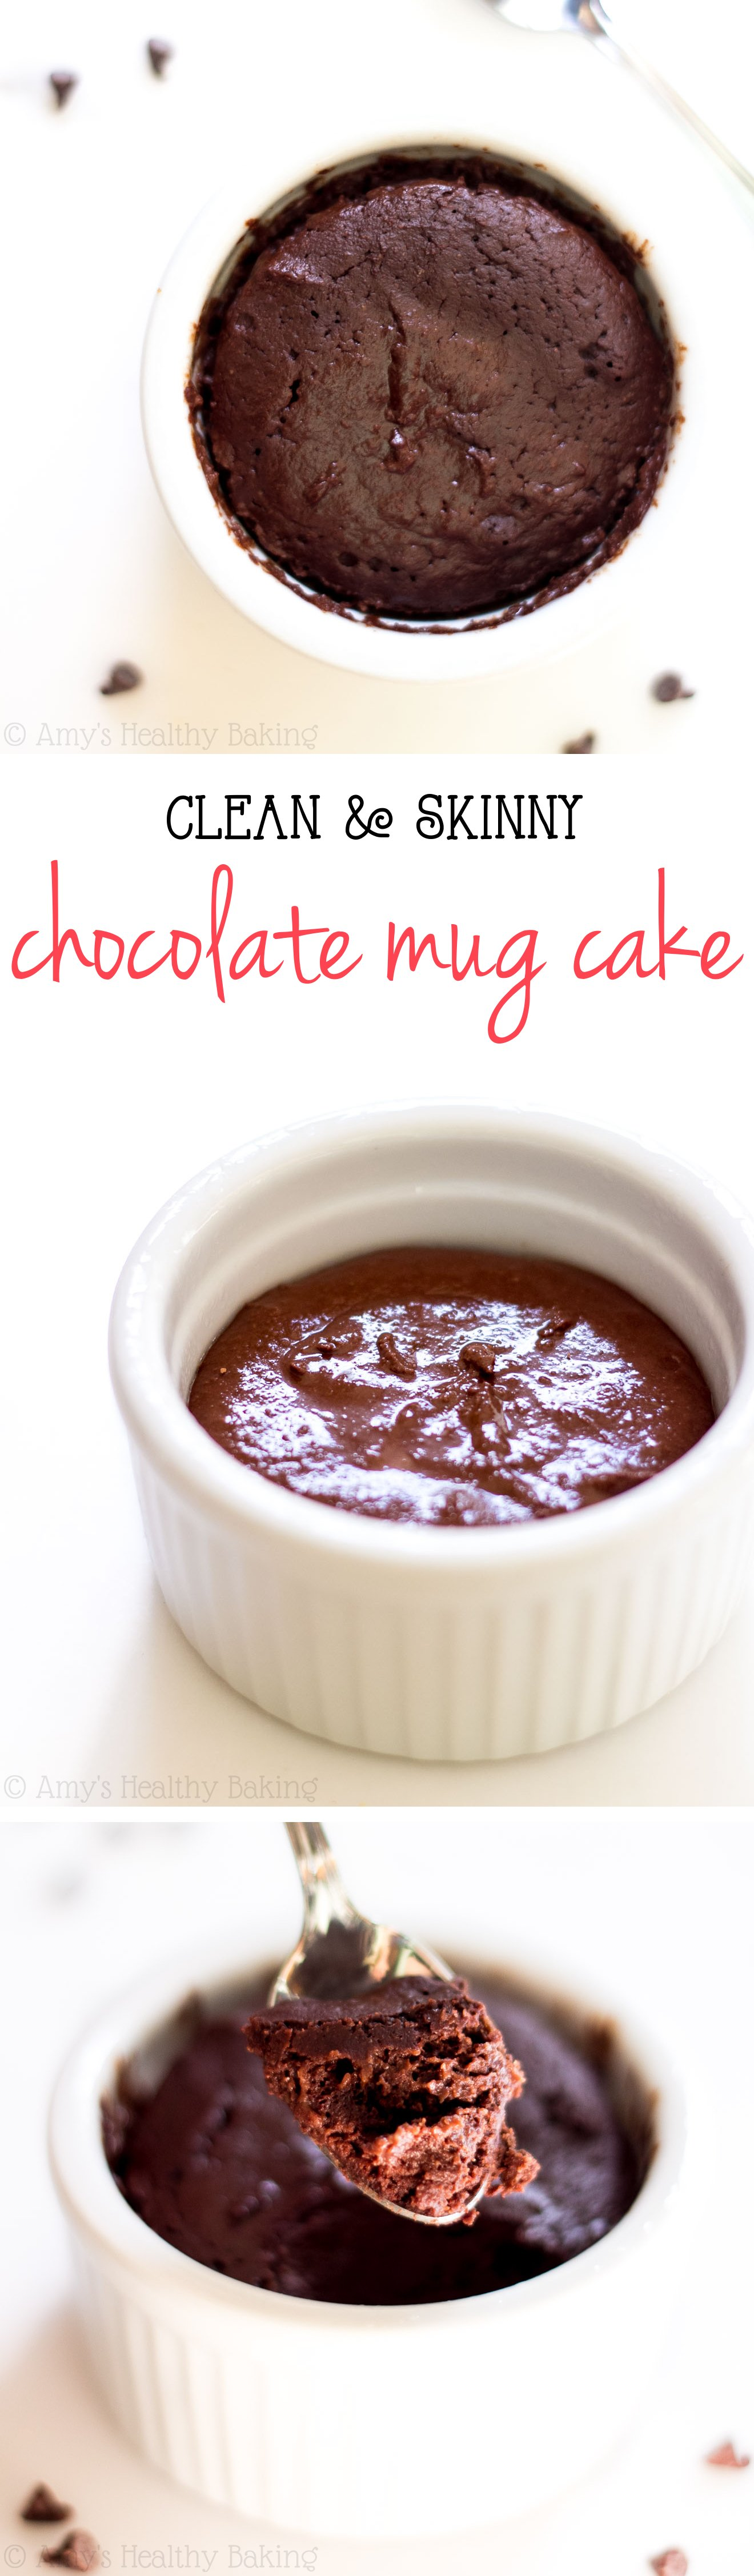 Easy Chocolate Mug Cake Healthy